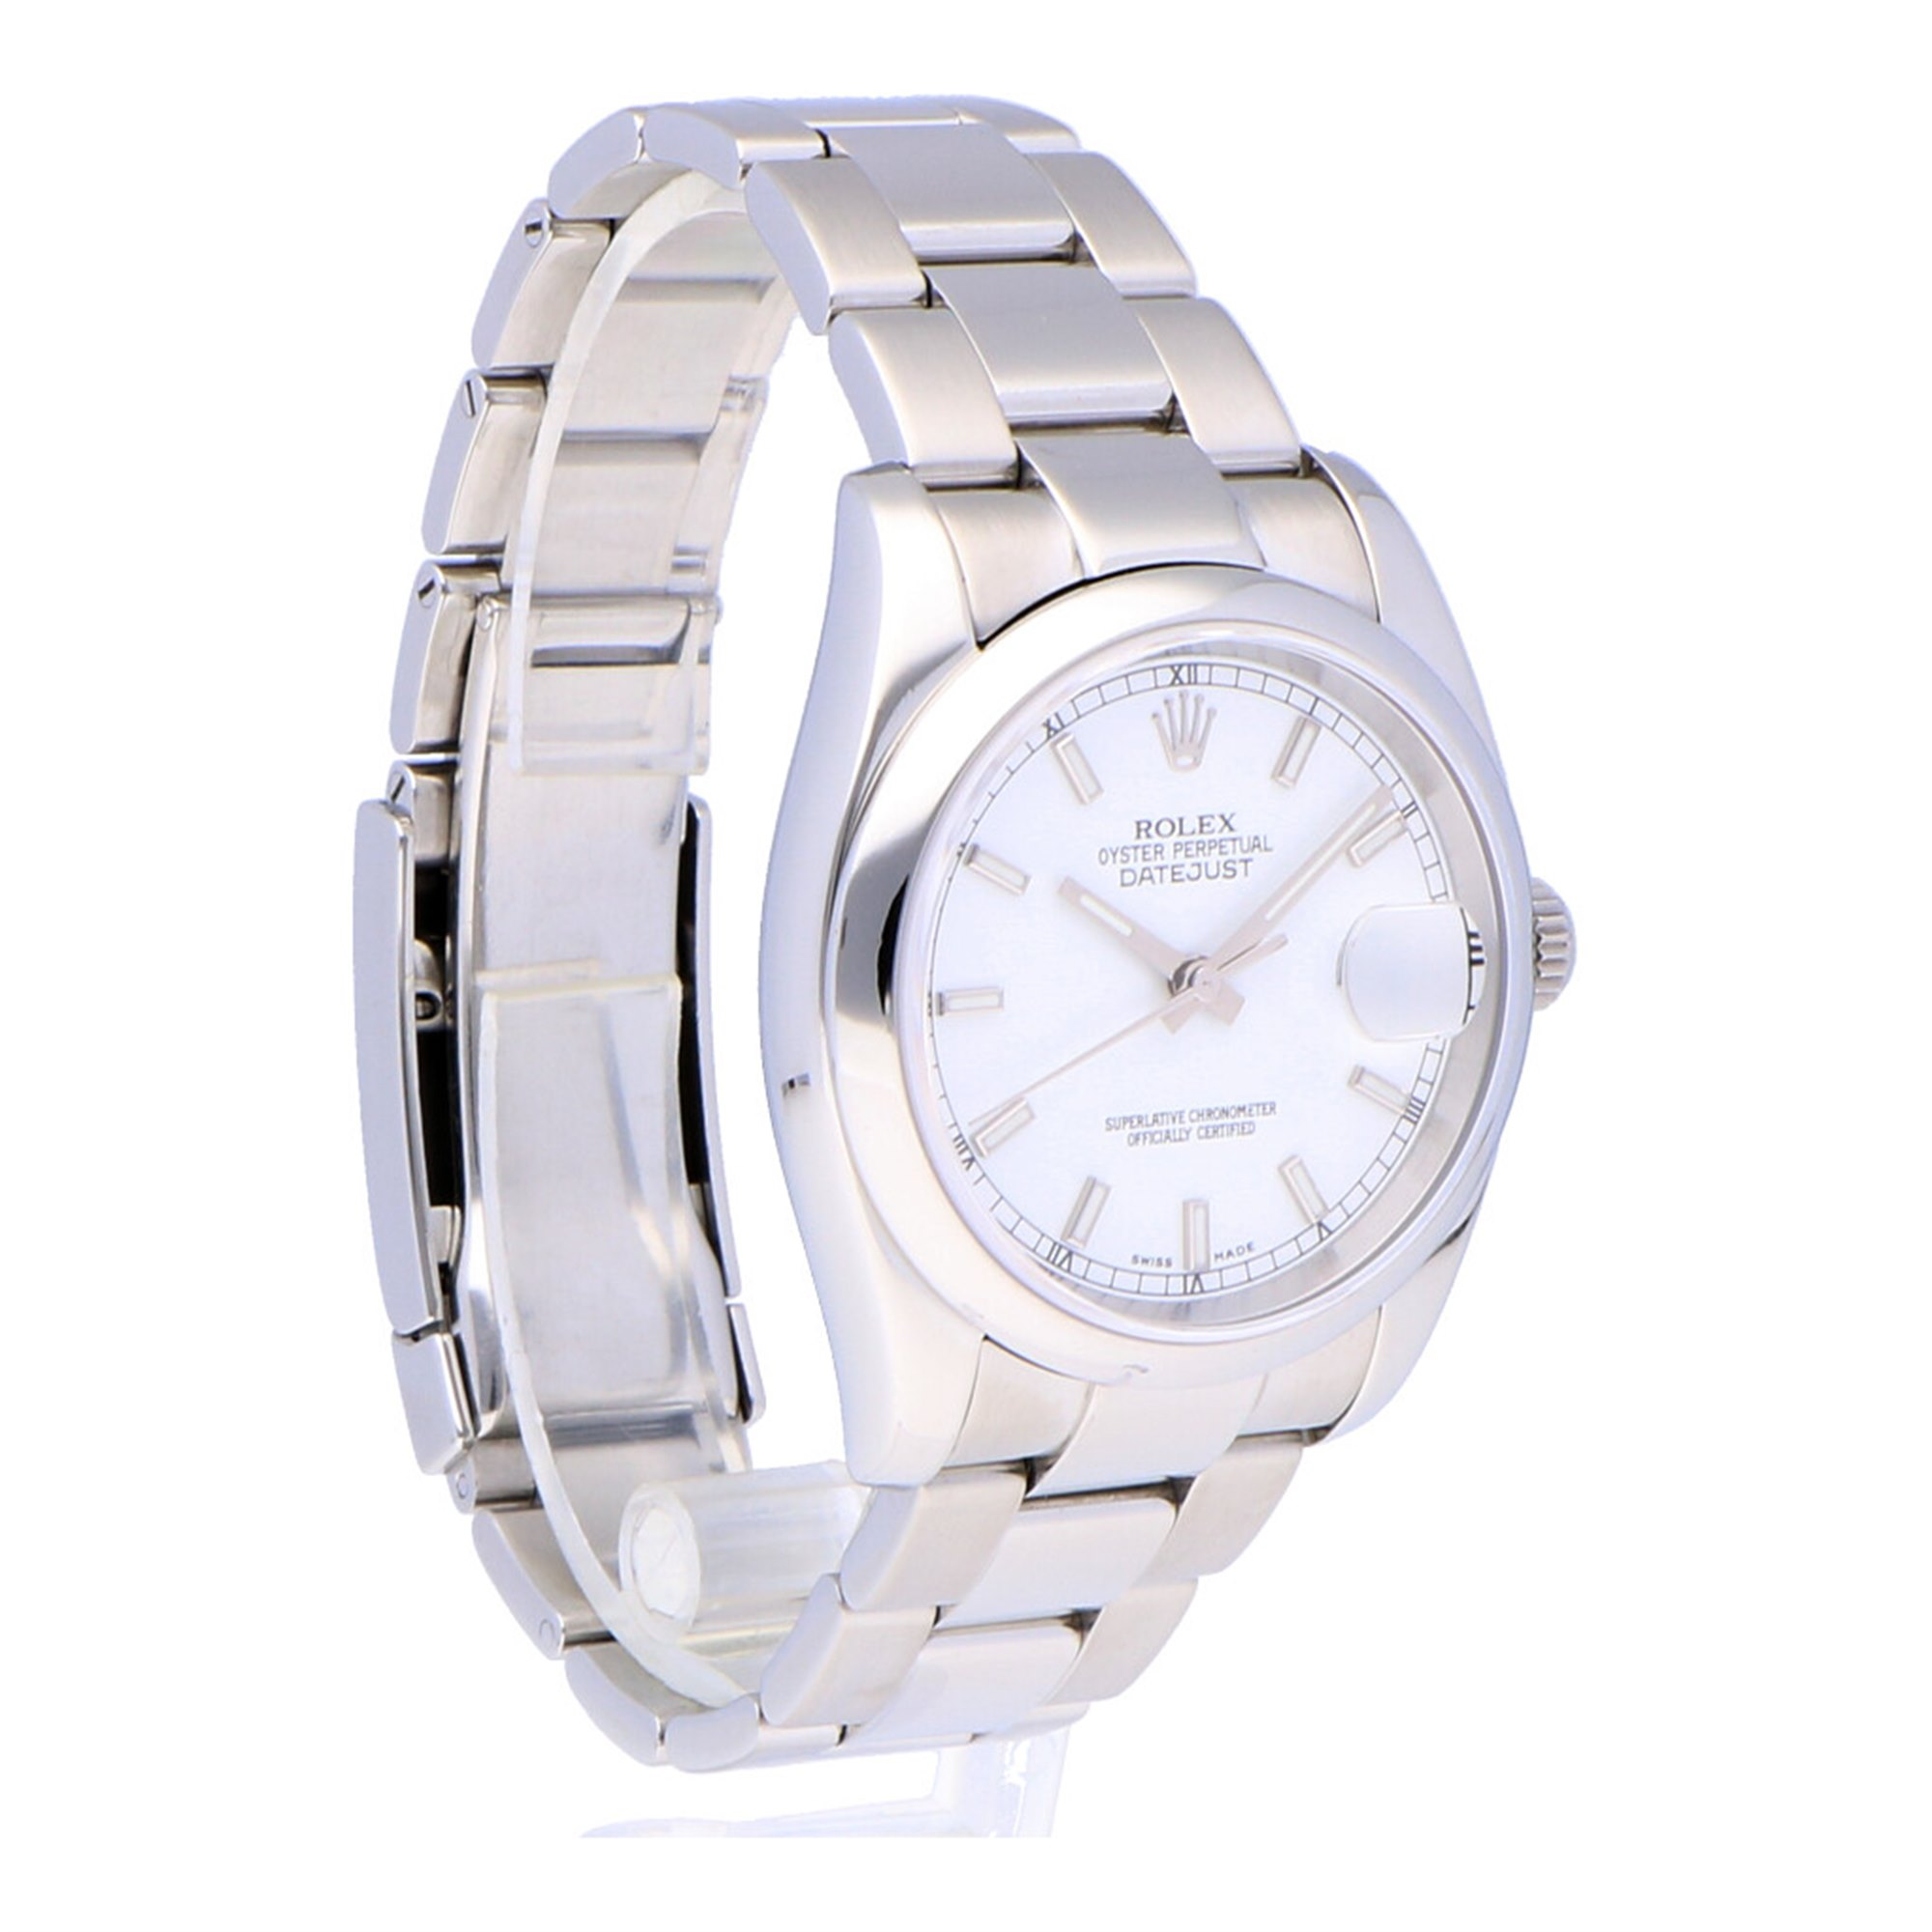 Rolex Datejust Stainless Steel 116200